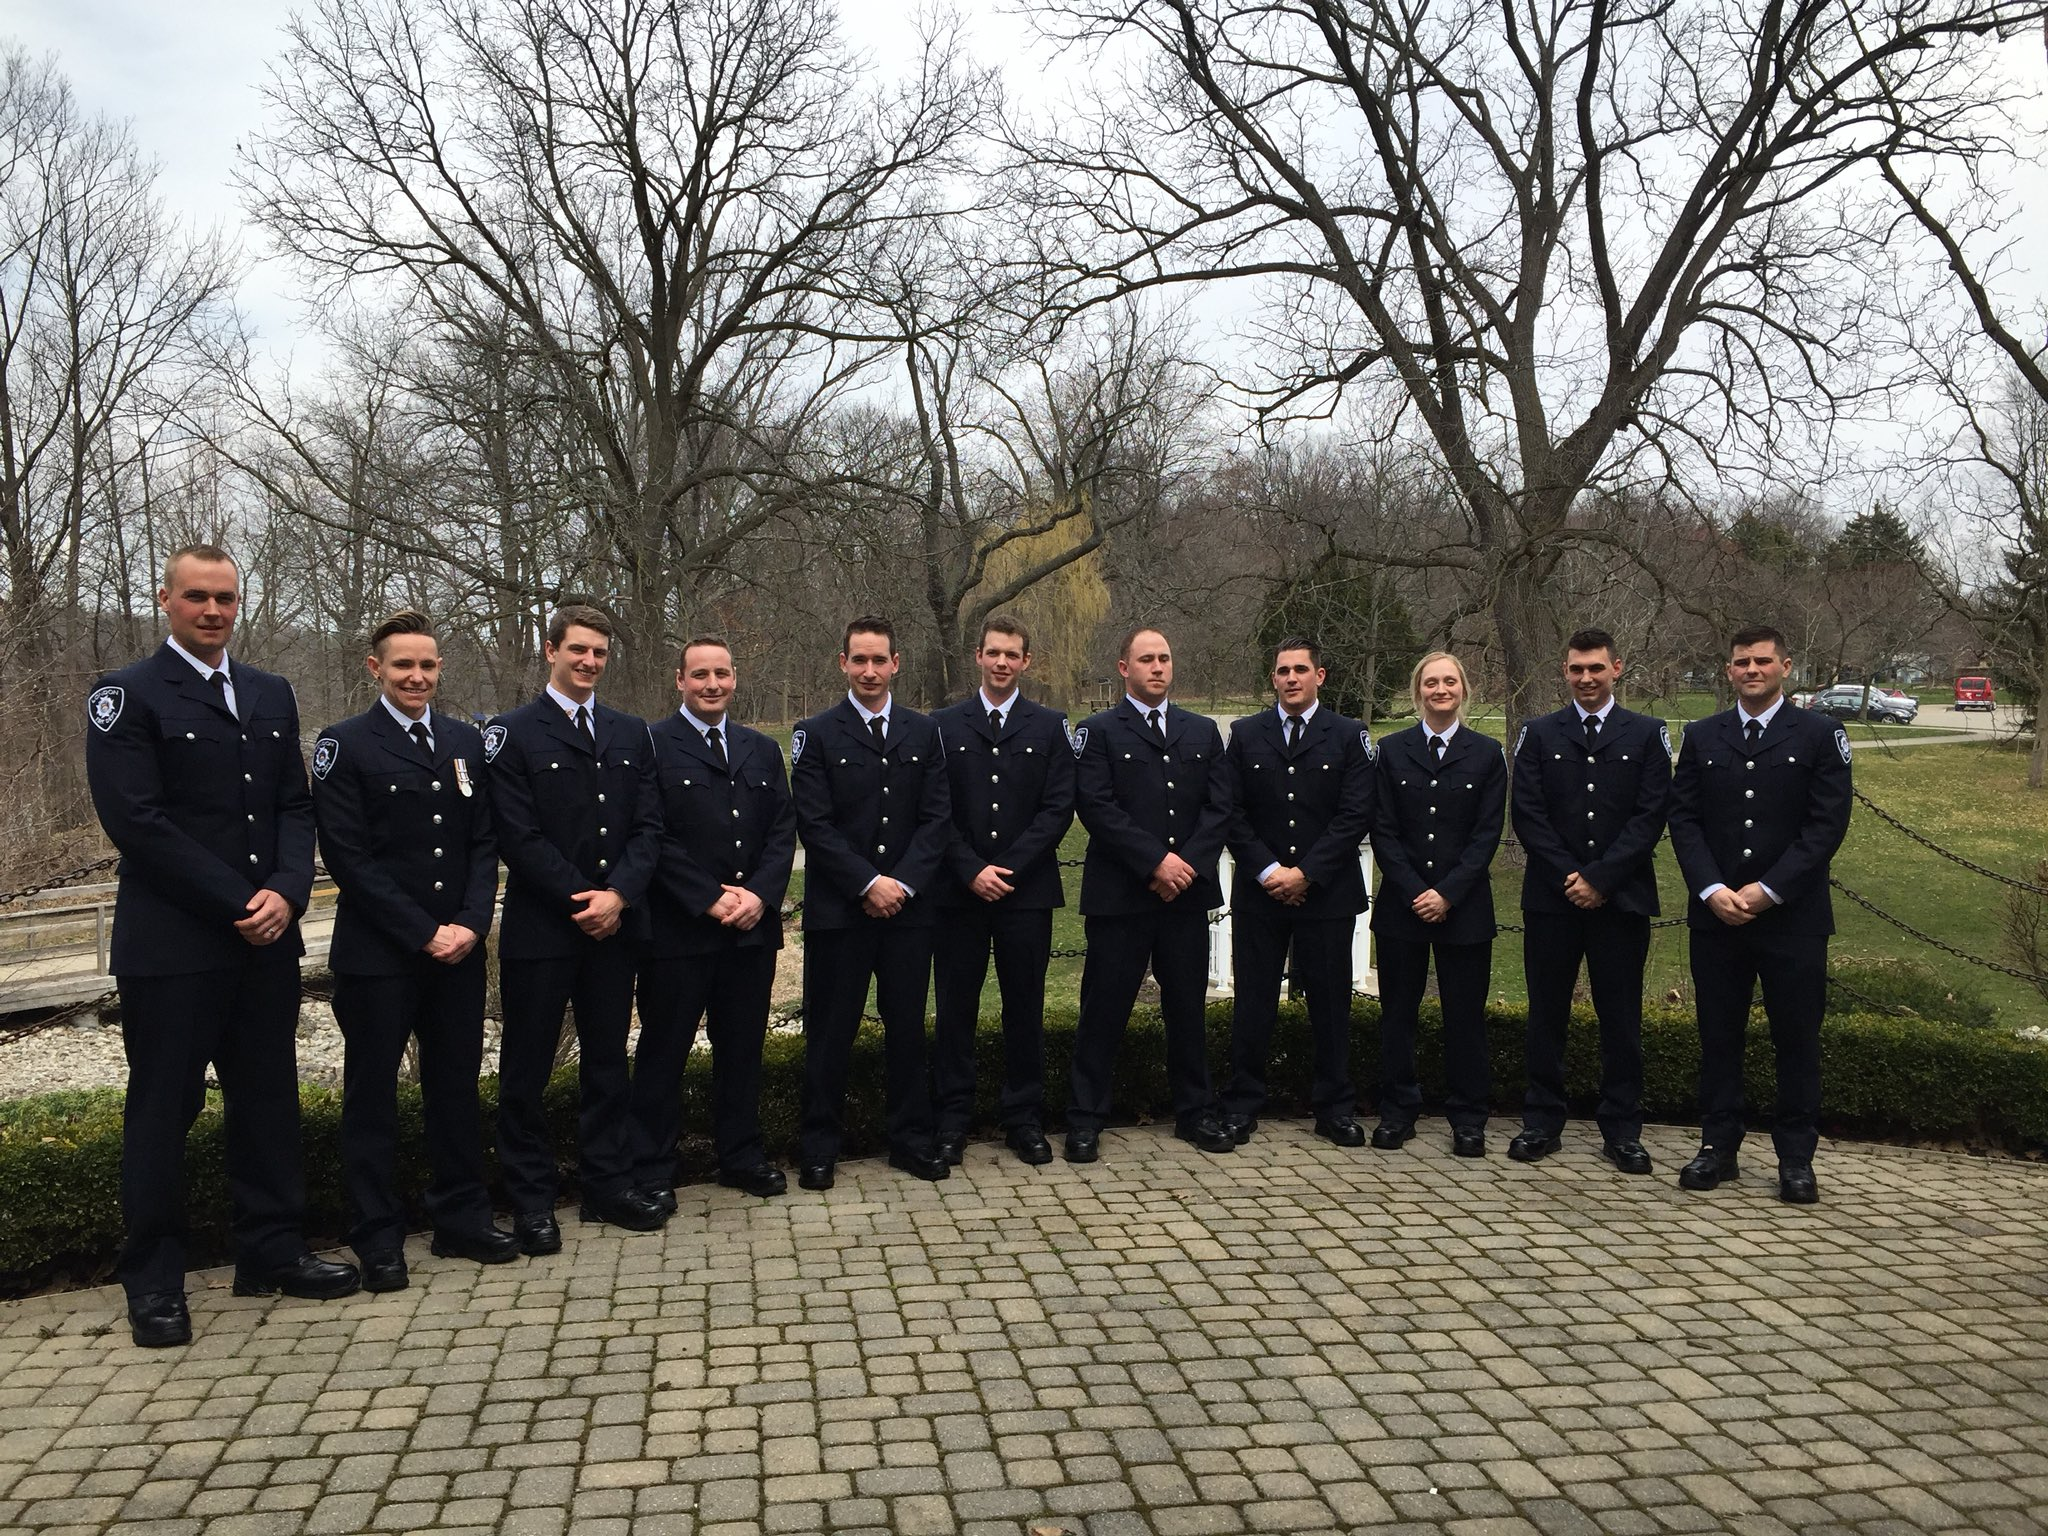 New Recruits posing for photo